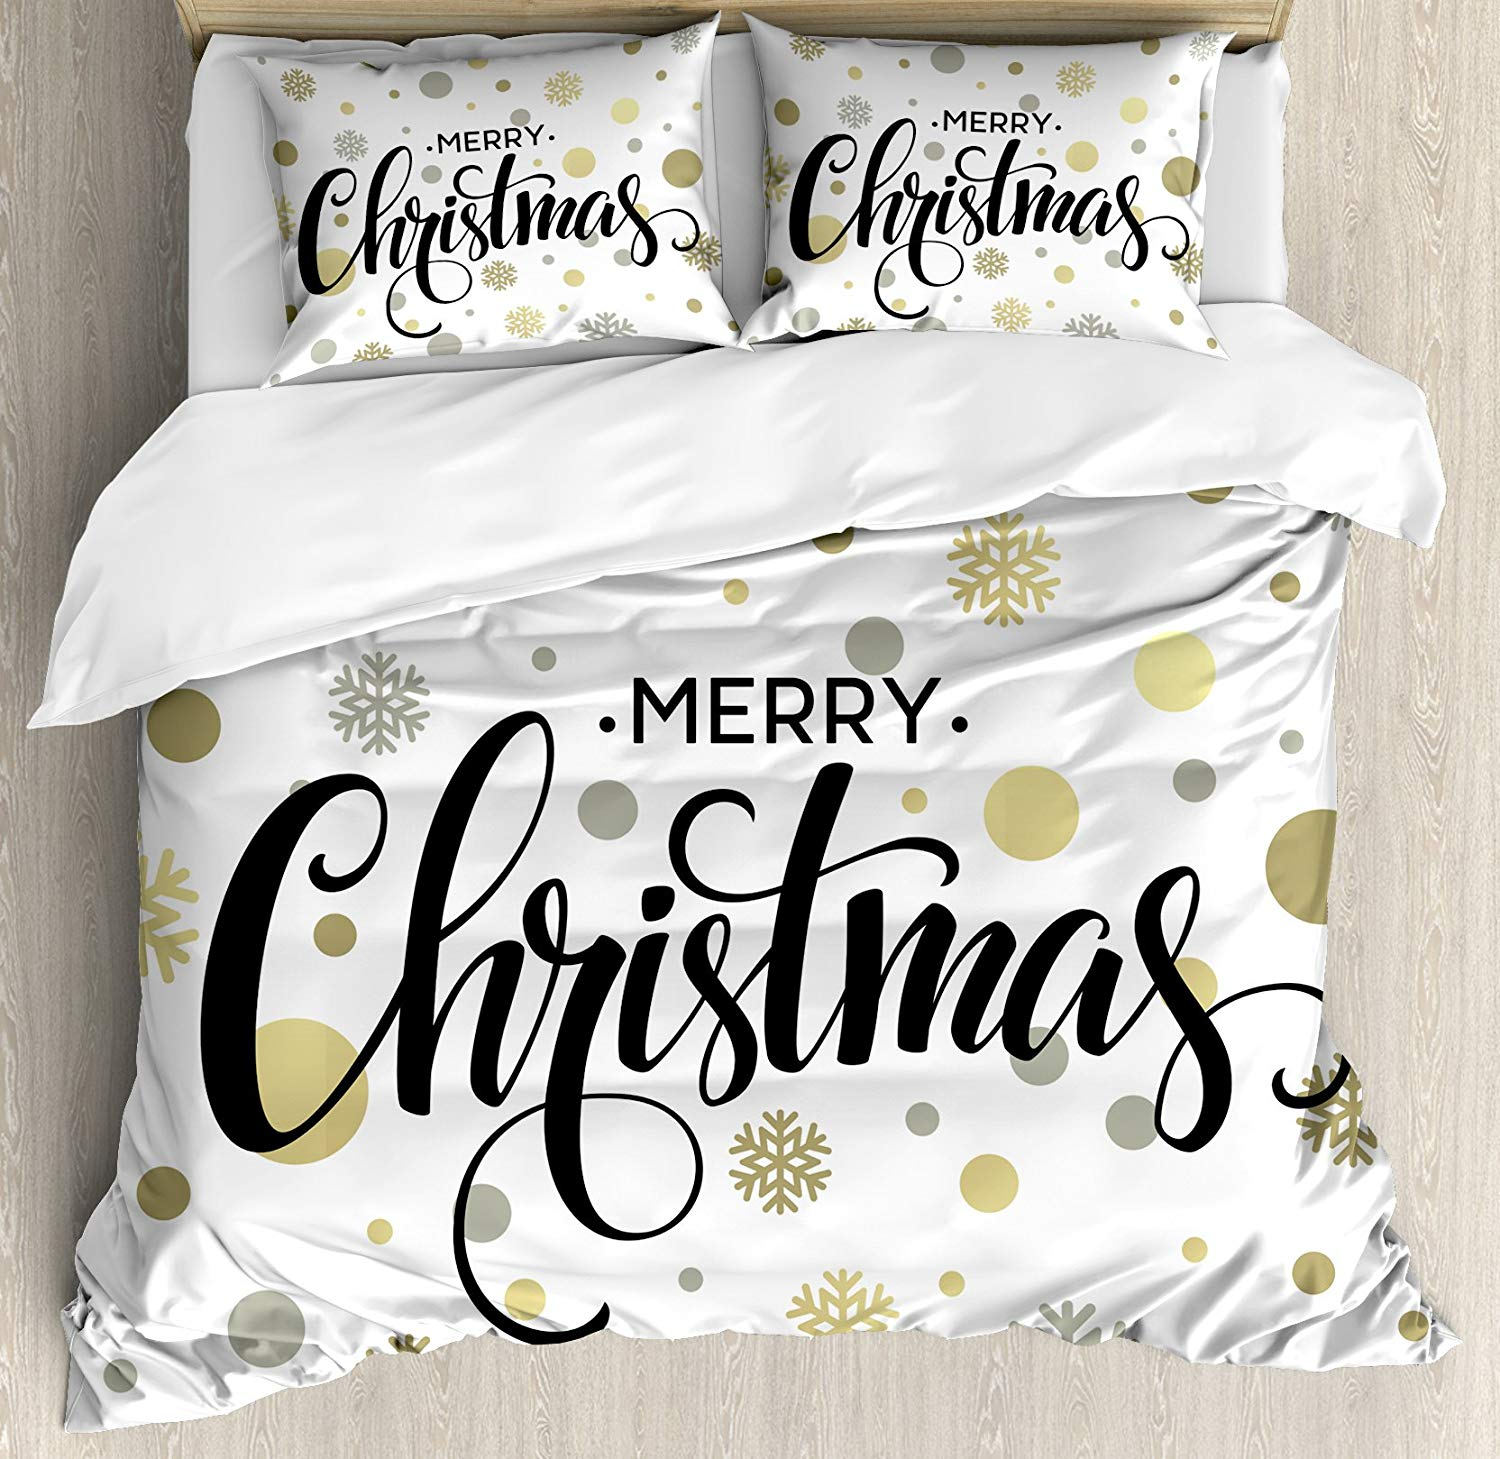 Ambesonne Merry Christmas Duvet Cover Set - Buy Christmas Duvet Covers